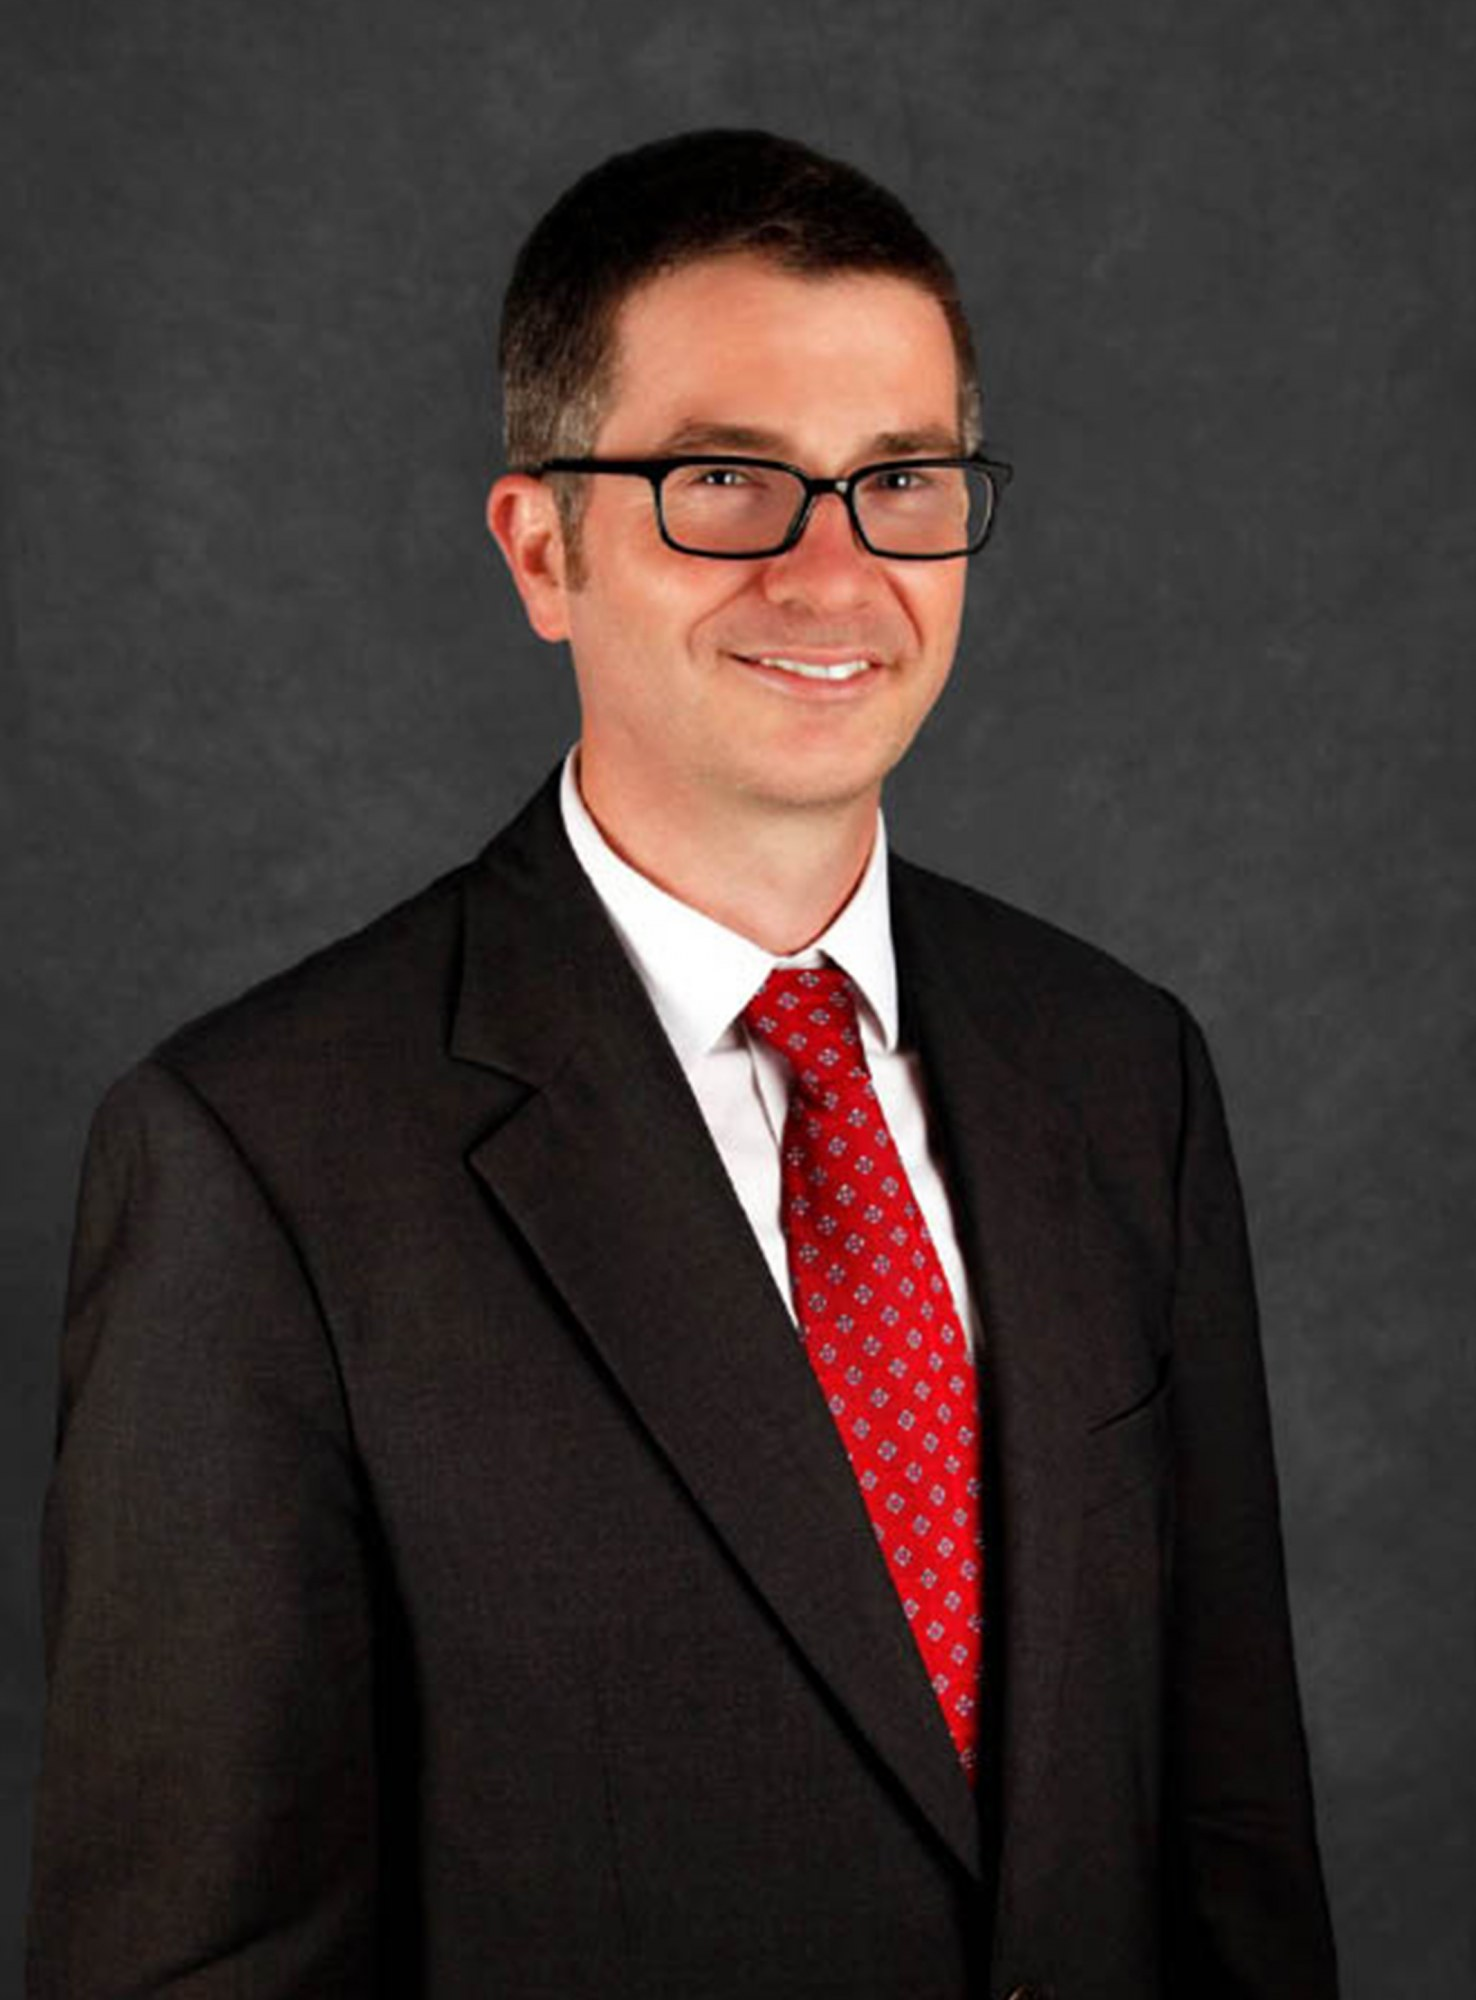 Portrait photo of Gavin D. O'Mahony, MD - hand expert at Advanced Surgery Center of Omaha